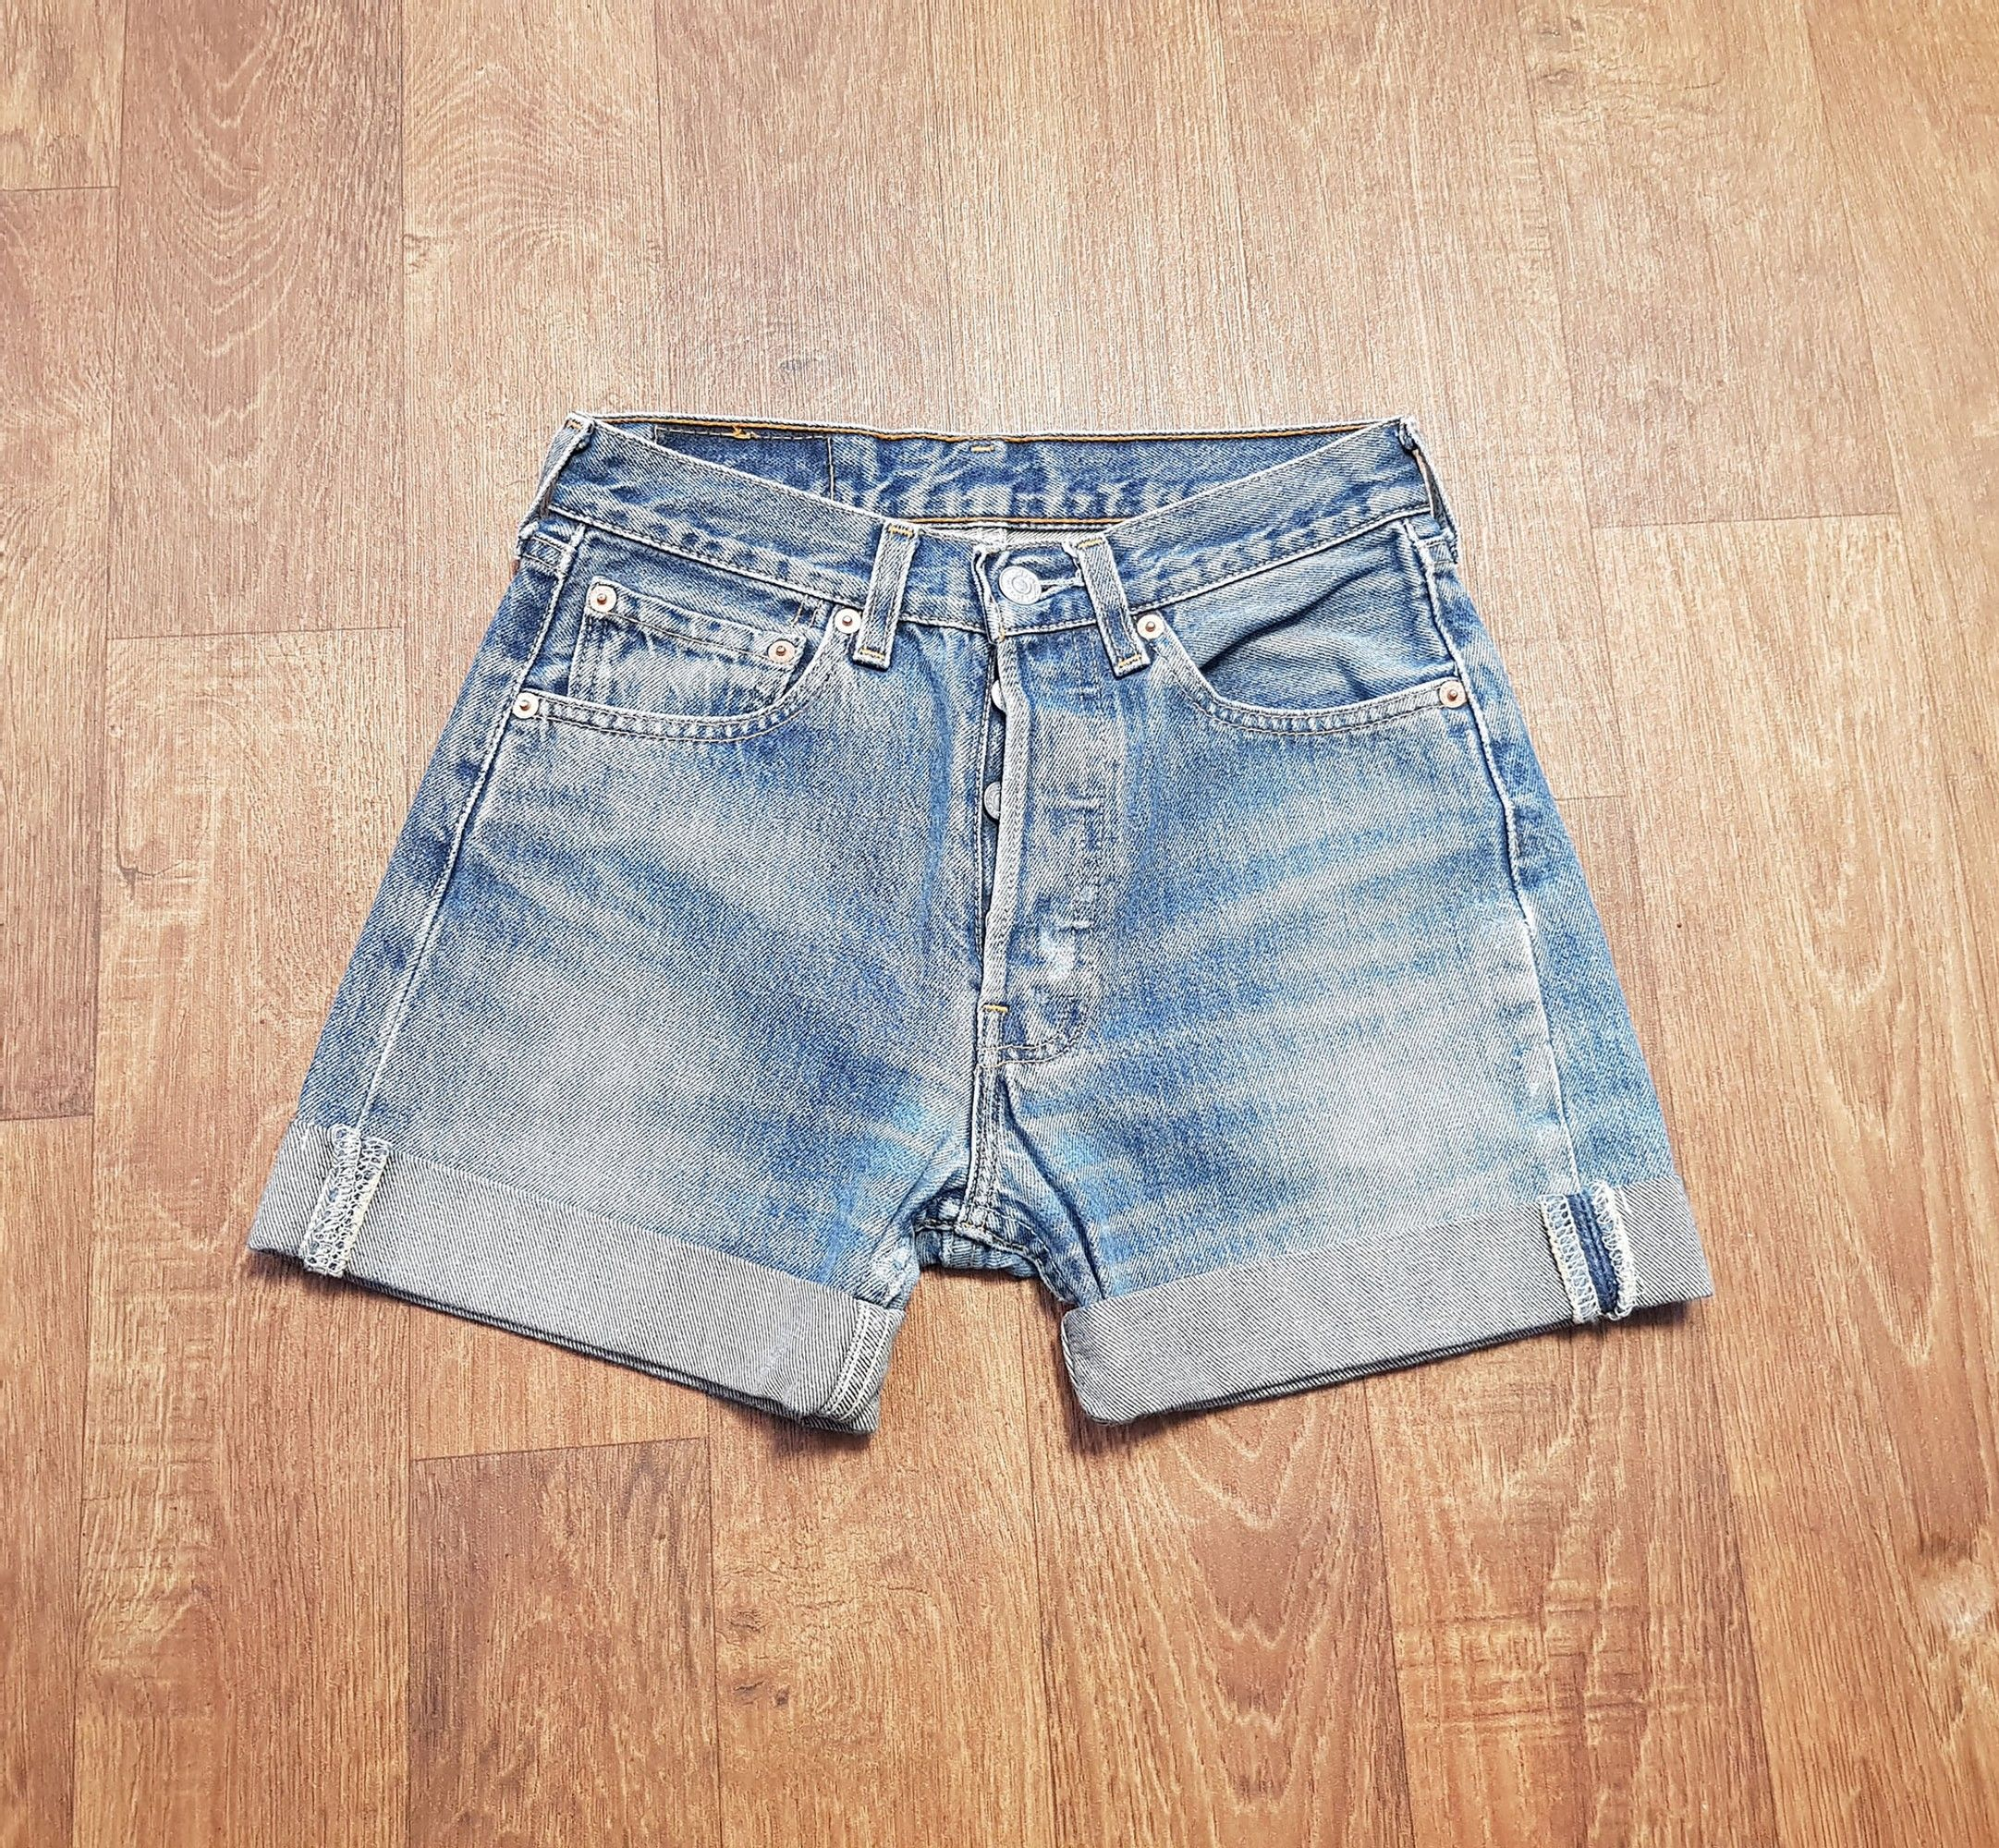 1980s Vintage Levi 501 Mid Blue Denim Shorts 26W UK Size 6/8